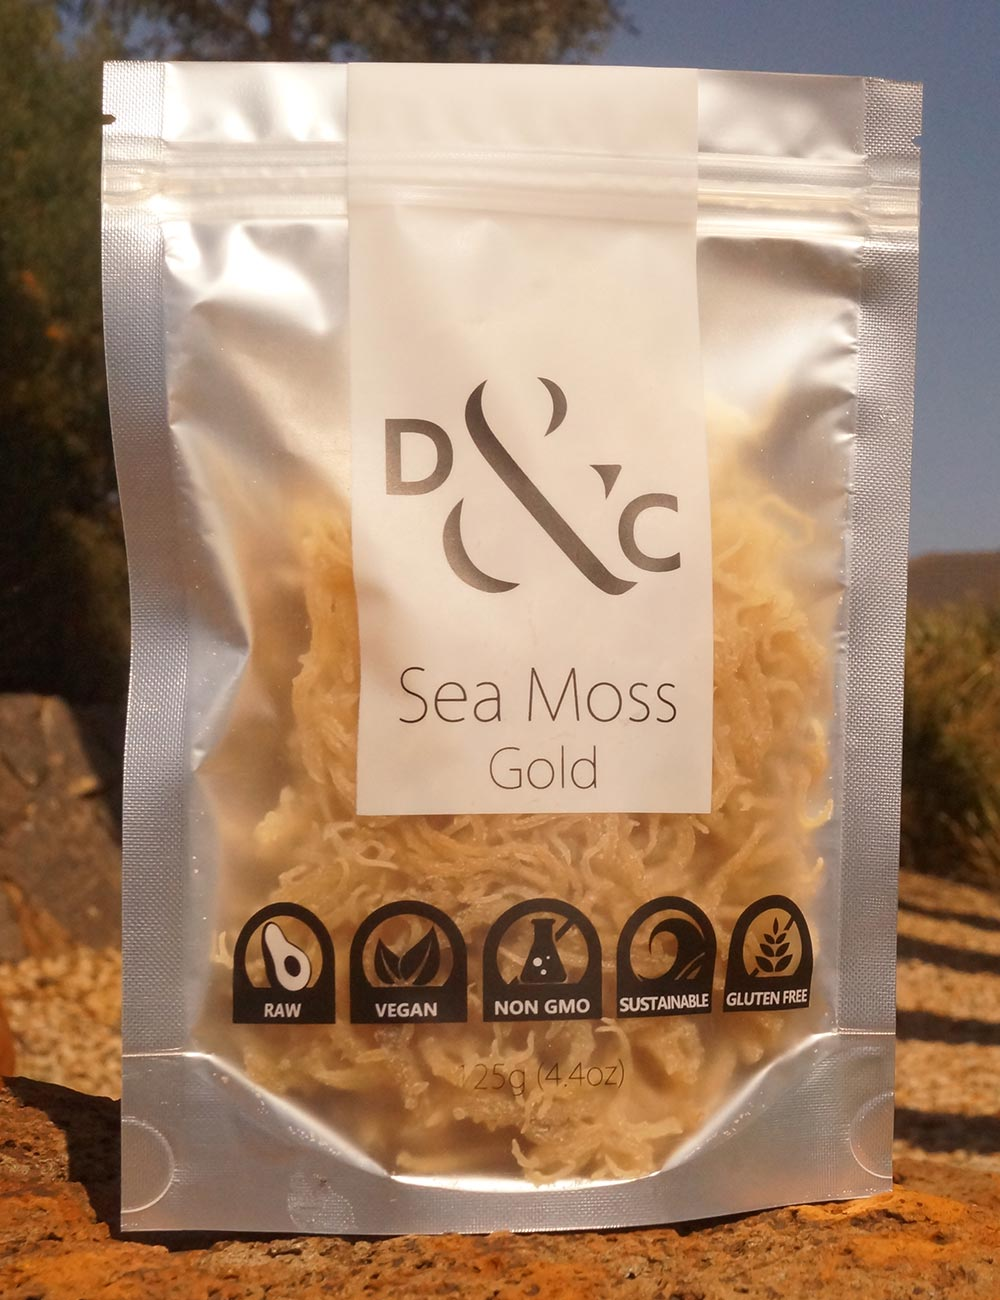 dried-sea-moss-gold-detox-and-cure-125g-bag-of-dry-sea-moss-outdoors